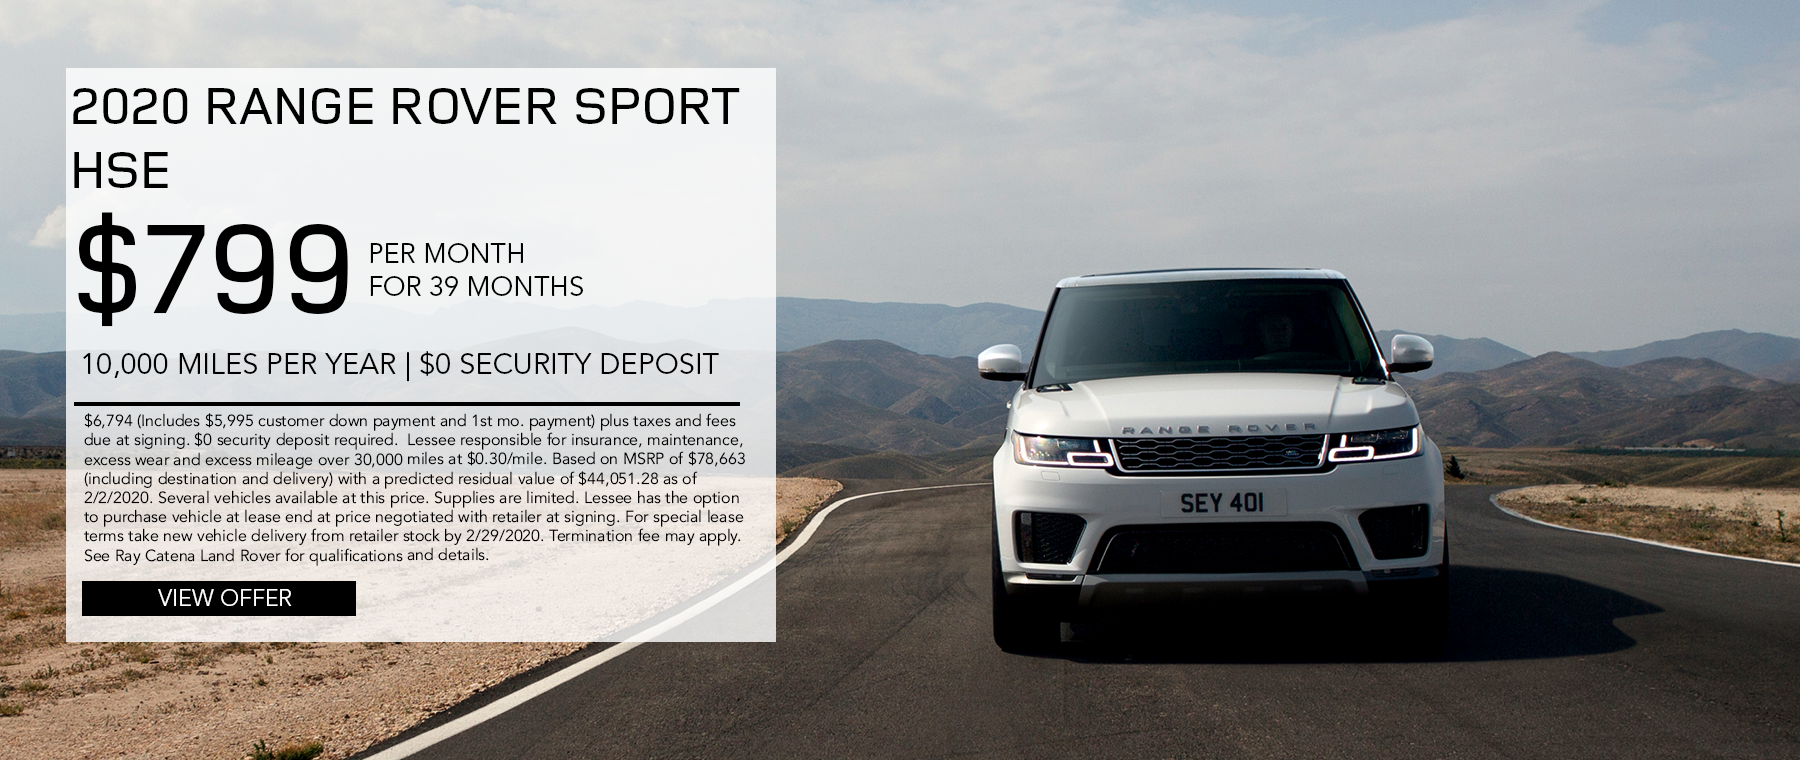 2020 Range Rover Sport HSE · $799/mo. · 39 mos. · 10,000 miles per year  $6,794 (Includes $5,995 customer down payment and 1st mo. payment) plus taxes and fees due at signing. $0 security deposit required.  Lessee responsible for insurance, maintenance, excess wear and excess mileage over 30,000 miles at $0.30/mile. Based on MSRP of $78,663 (including destination and delivery) with a predicted residual value of $44,051.28 as of 2/2/2020. Several vehicles available at this price. Supplies are limited. Lessee has the option to purchase vehicle at lease end at price negotiated with retailer at signing. For special lease terms take new vehicle delivery from retailer stock by 2/29/2020. Termination fee may apply. See Ray Catena Land Rover for qualifications and details. Click to view details. White Range Rover Sport on road